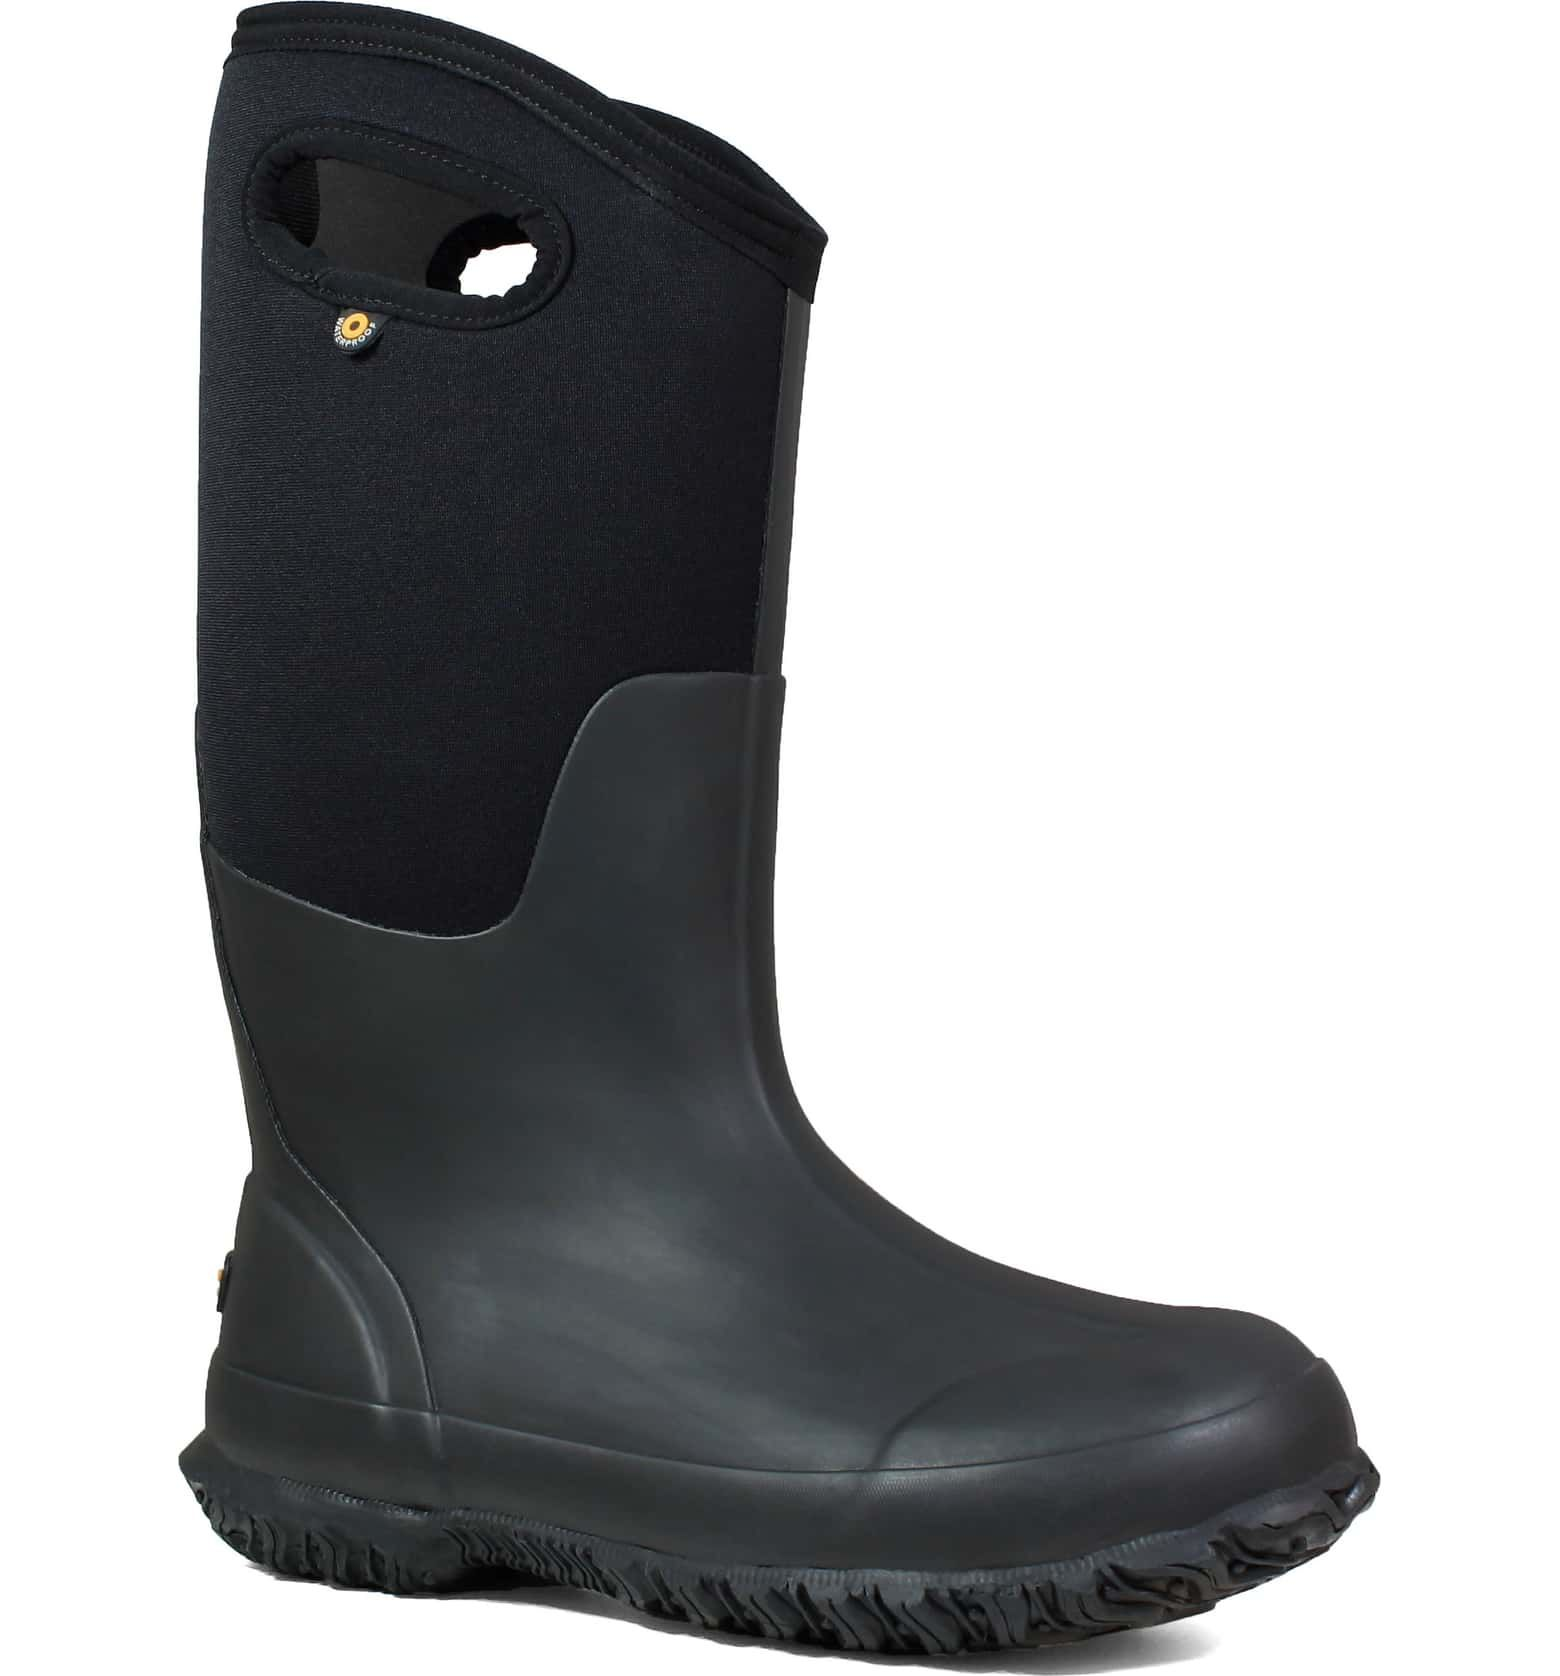 Bogs Classic Tall Matte Insulated Waterproof Rain Boot Women Boots Rain Boots Insulated Boots